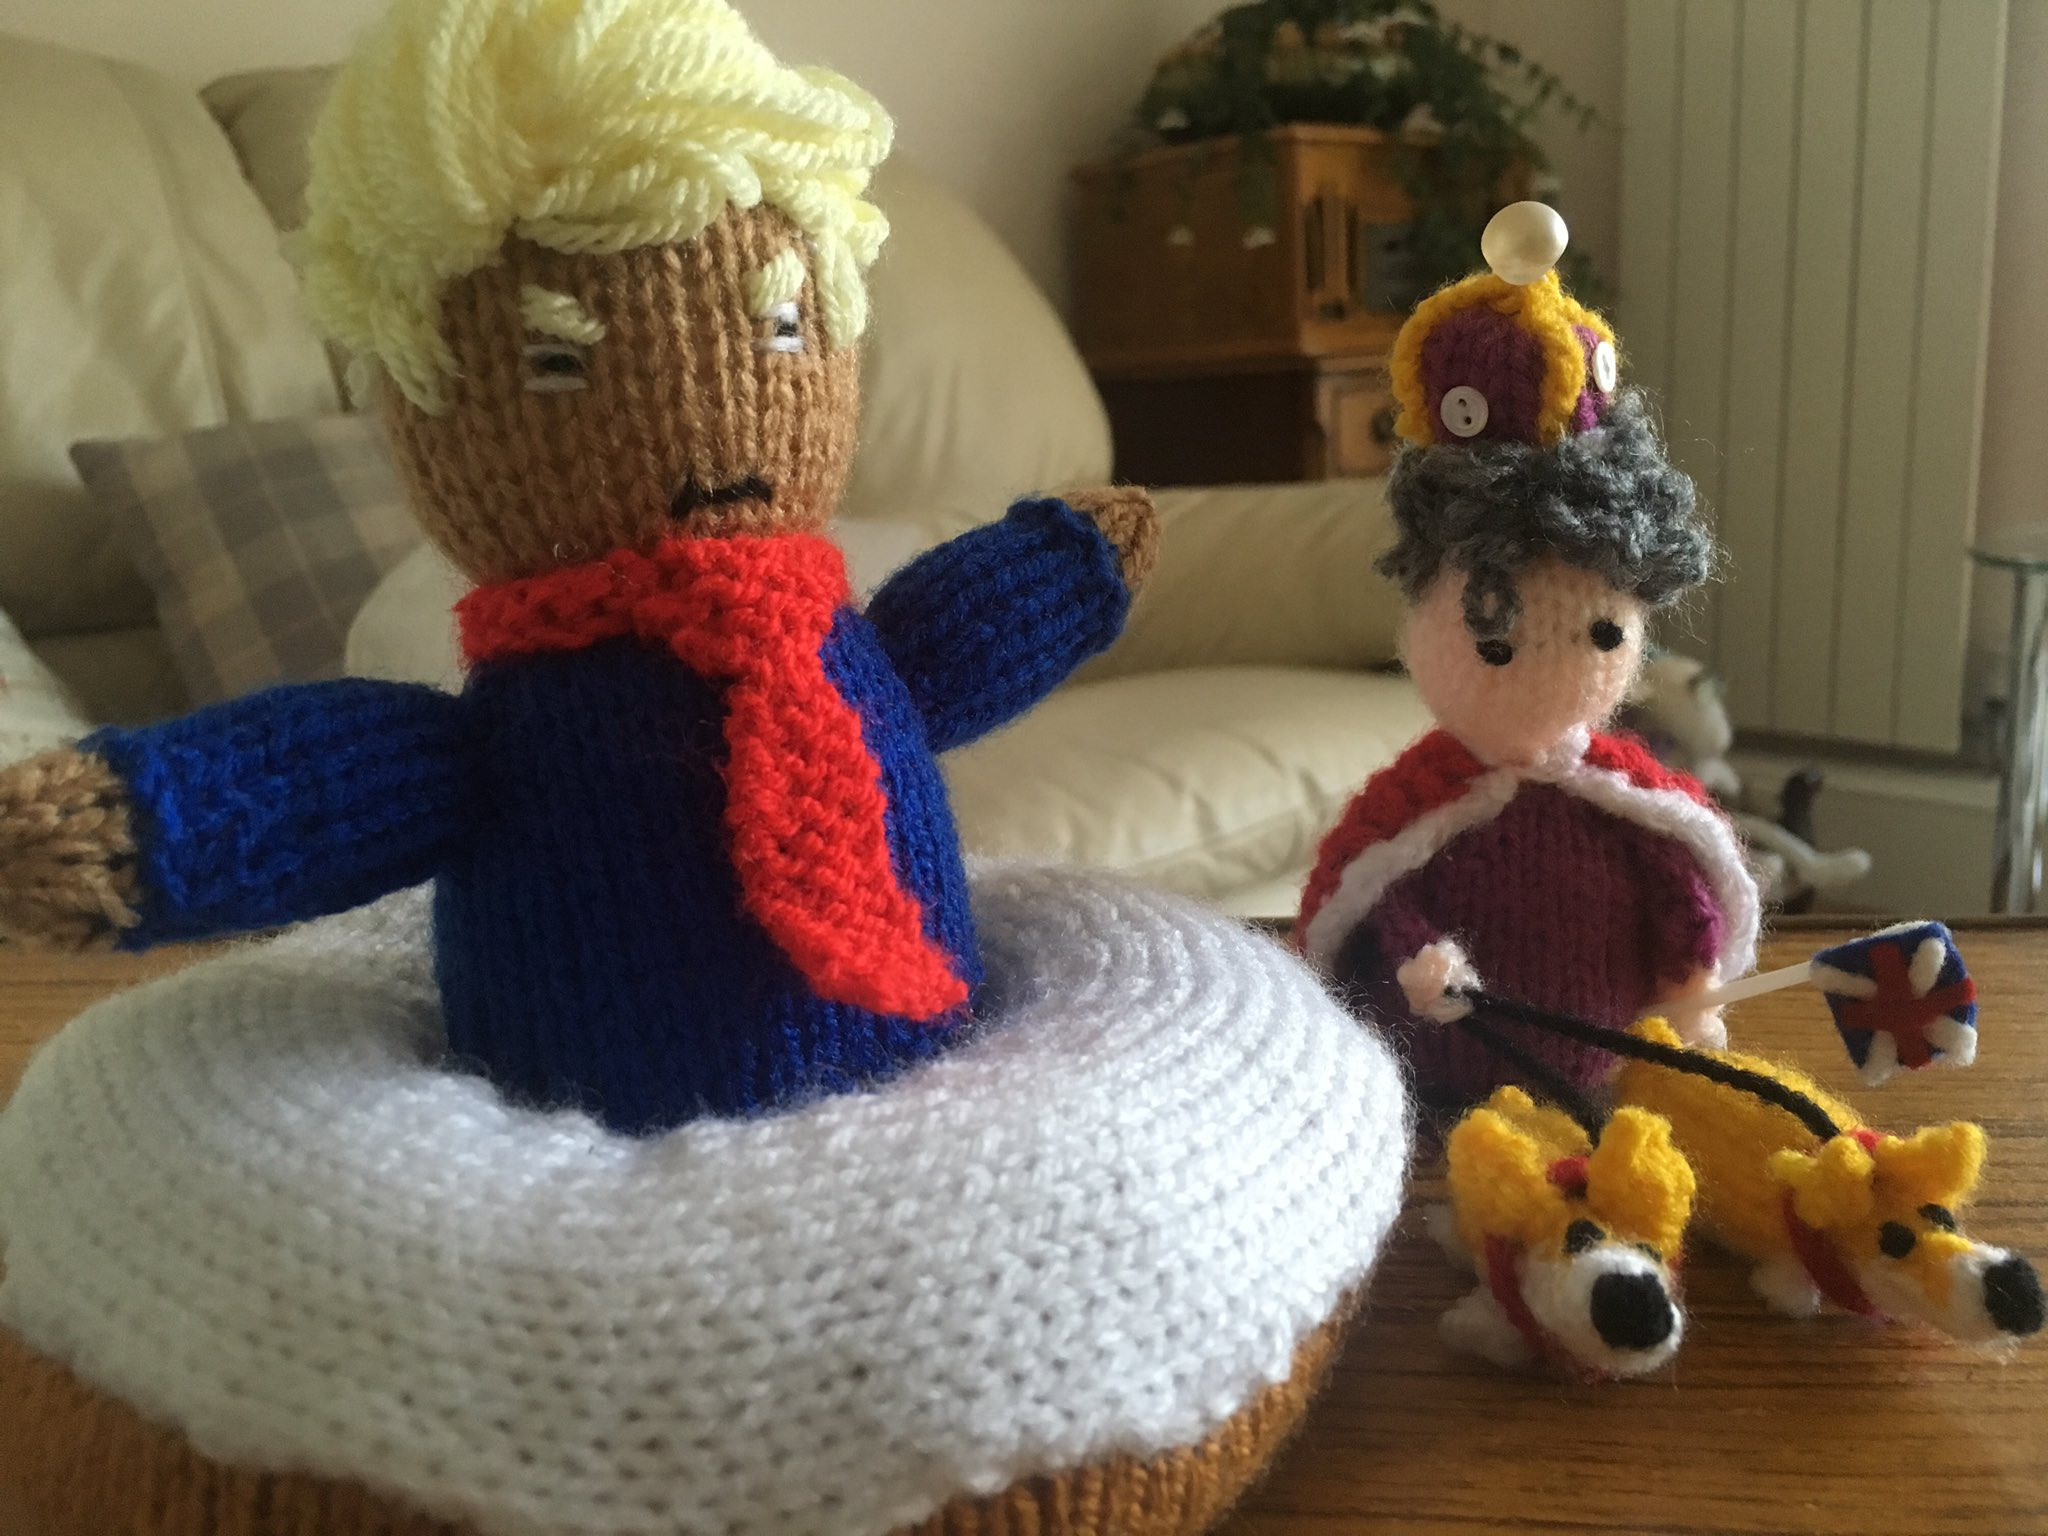 My mother loves to knit. Here's Donald Trump in a doughnut & Queen Elizabeth with her corgis. https://t.co/ASo46traFy